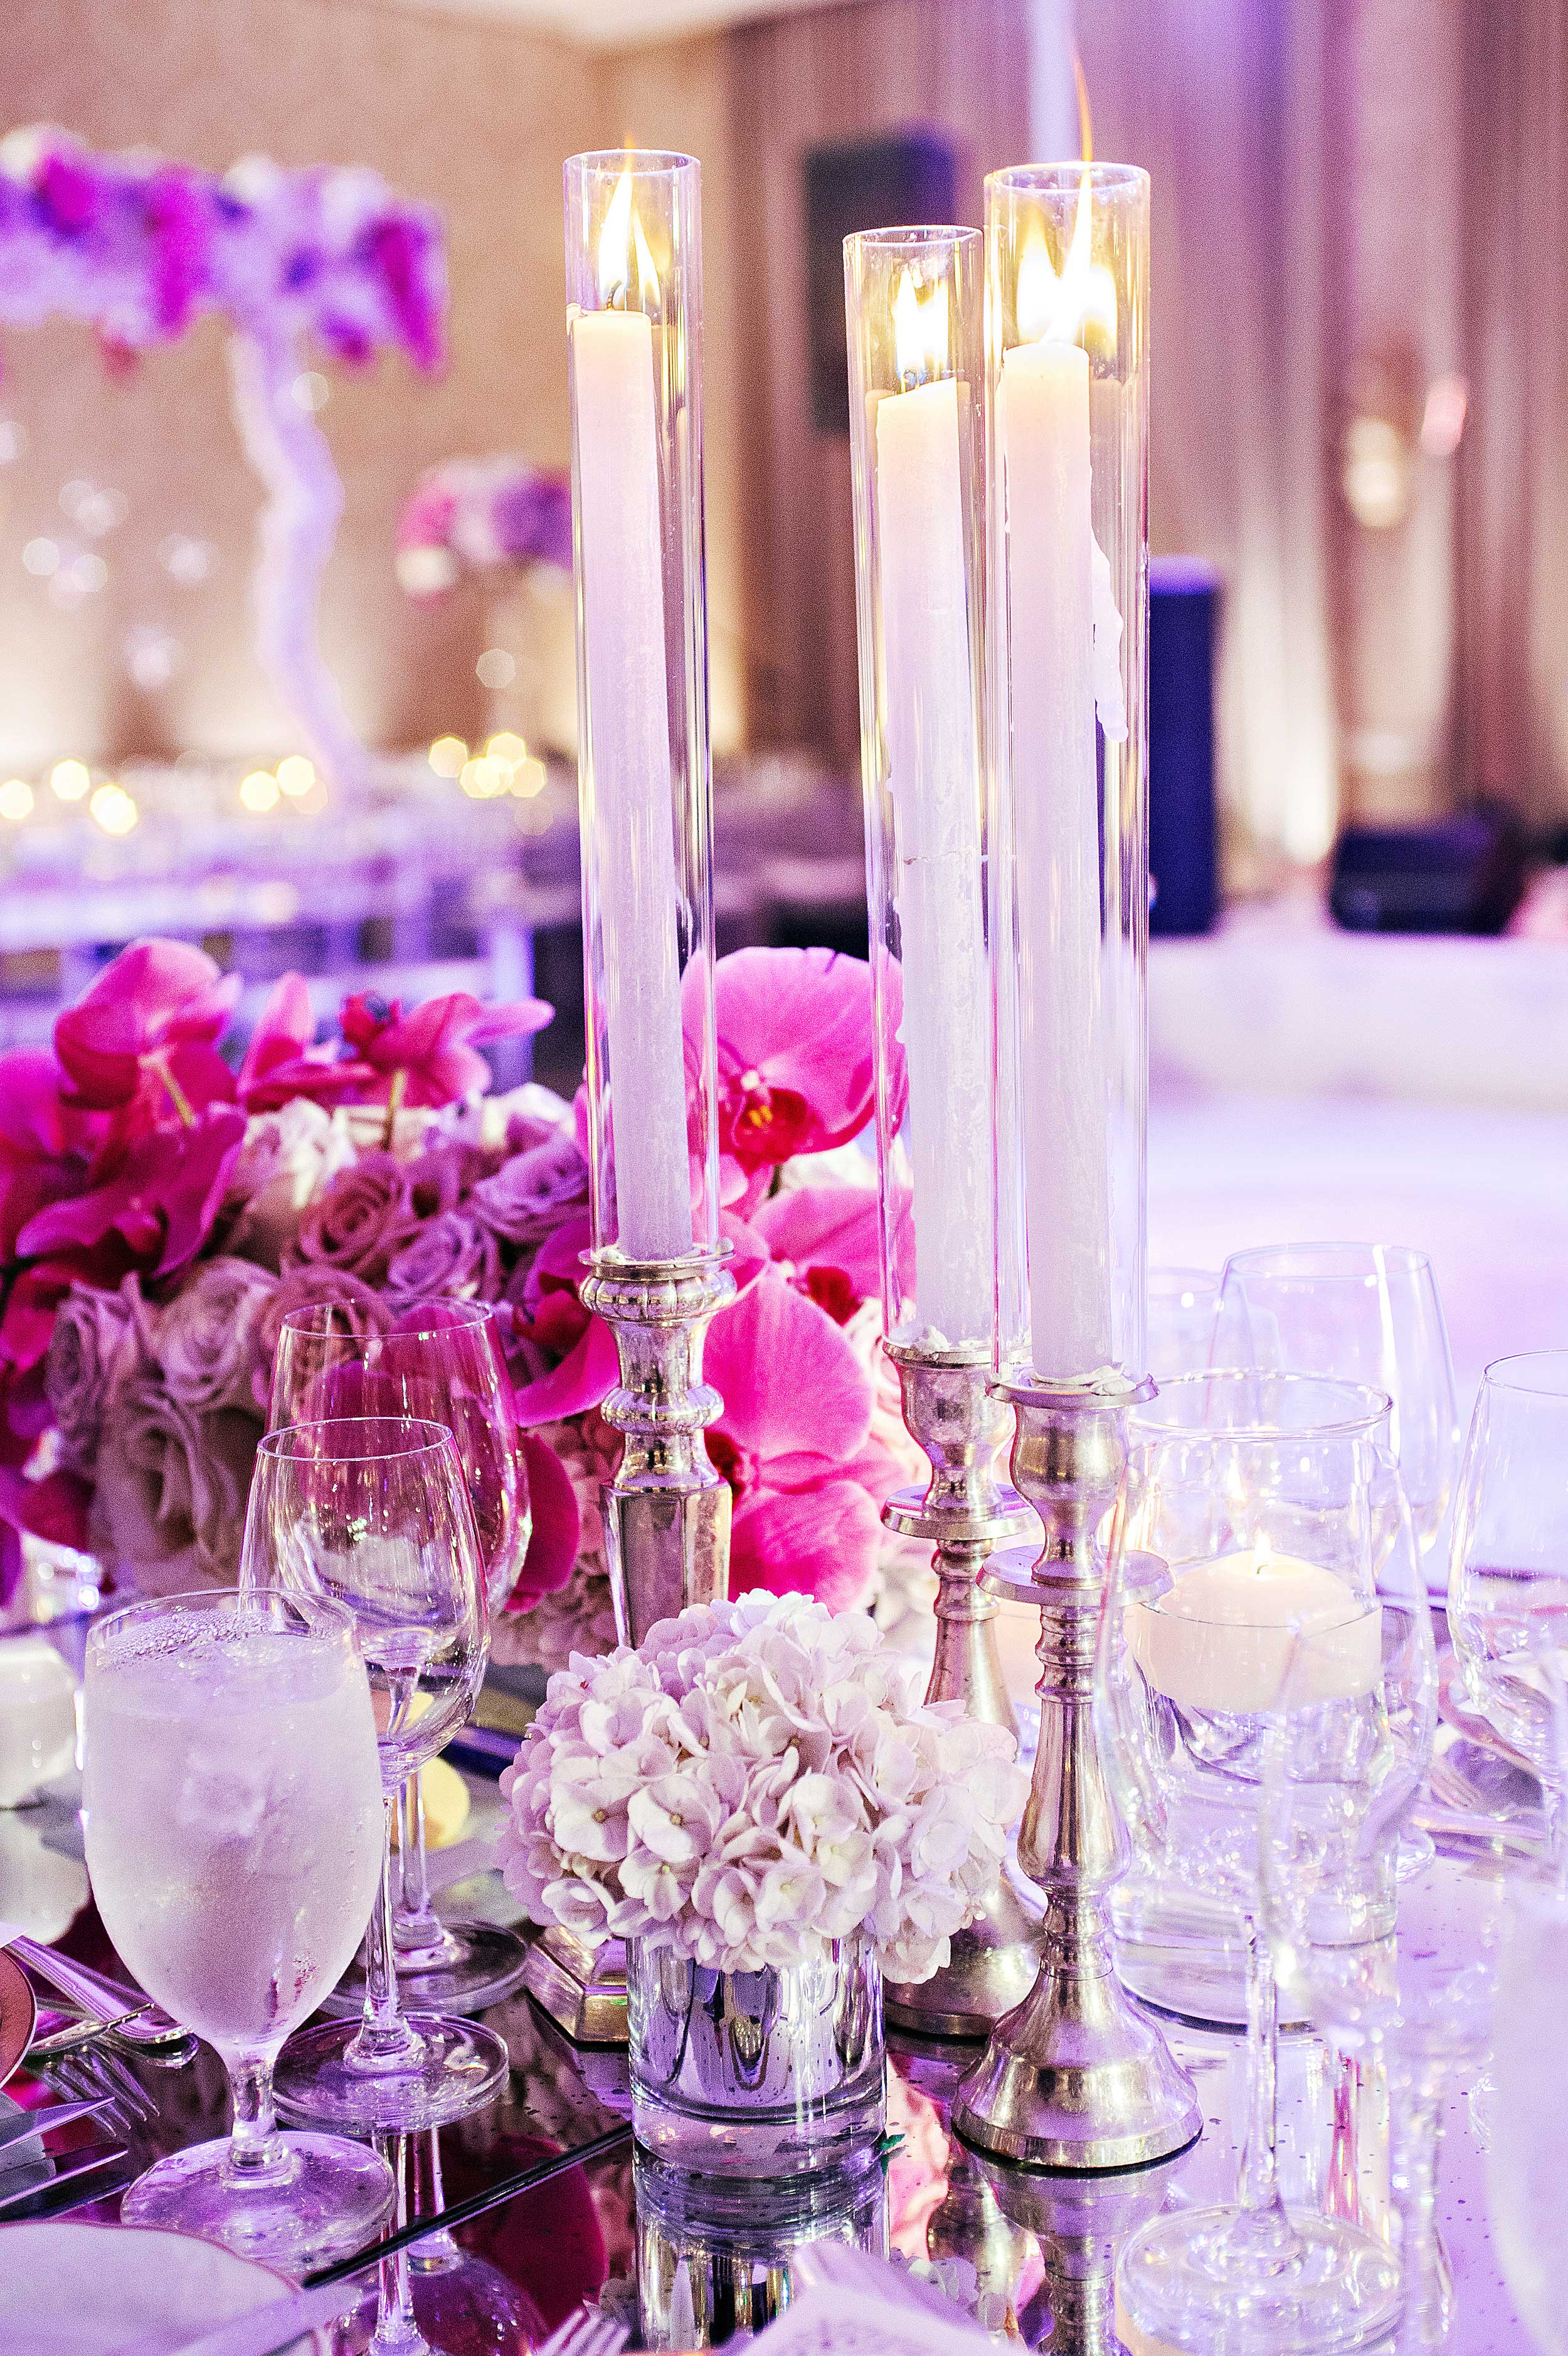 Fuchsia orchids and lighting at formal wedding reception table